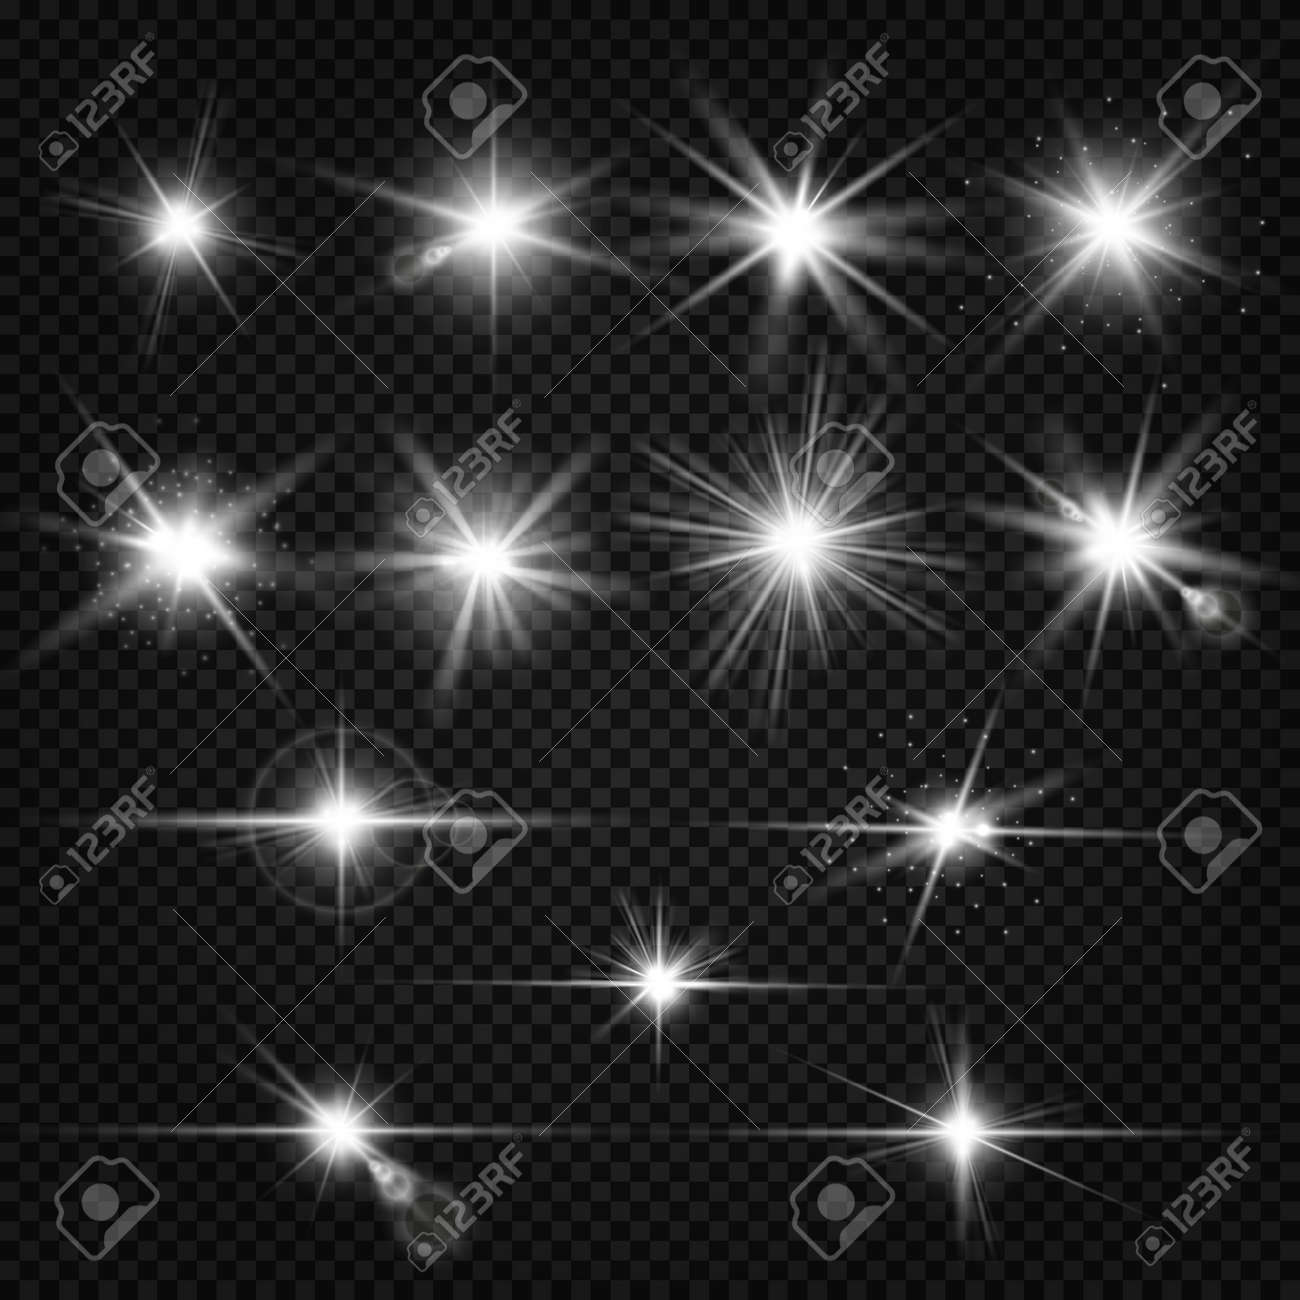 Twinkle lens flares, glare lighting vector effects. Collection of white star energy on on transparent background illustration - 167139207